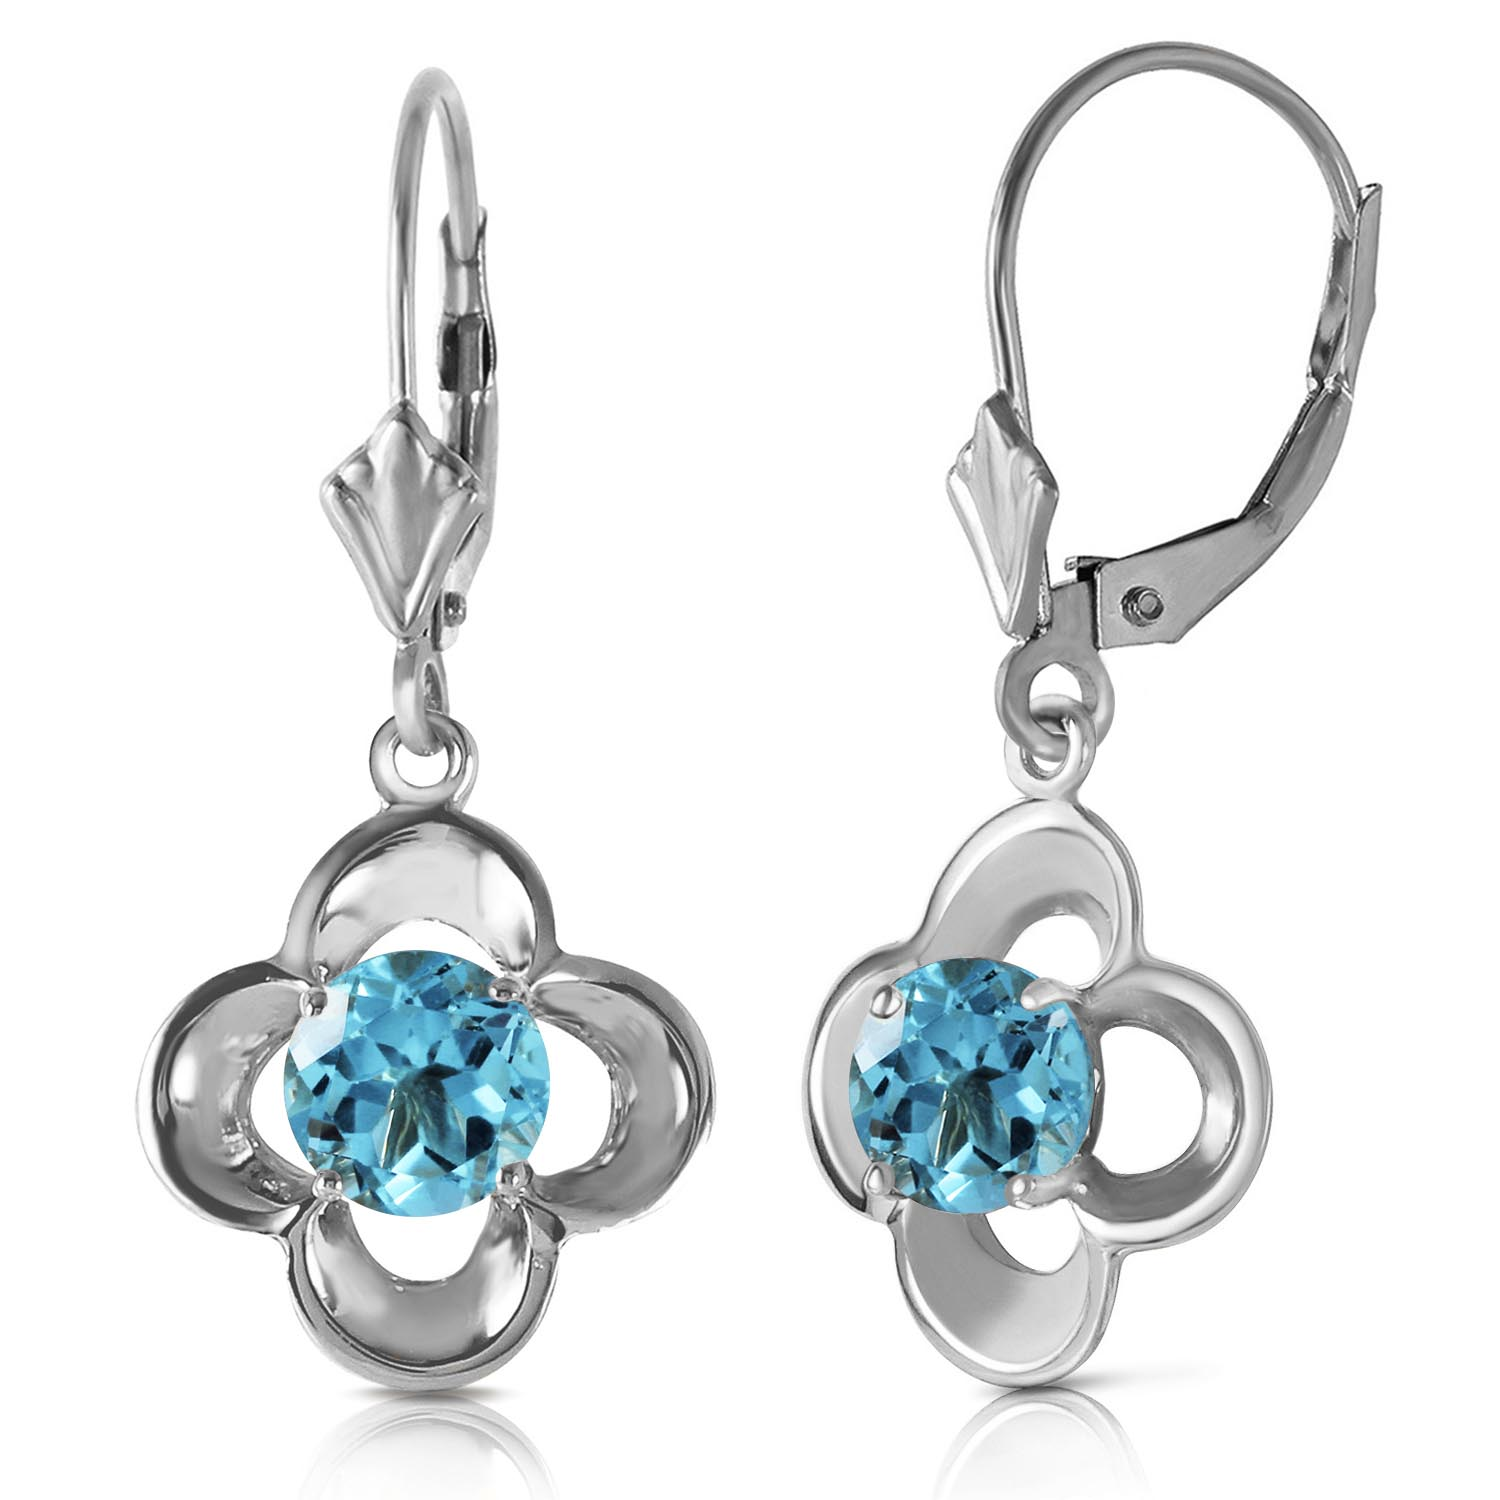 Blue Topaz Corona Drop Earrings 1.1ctw in 9ct White Gold